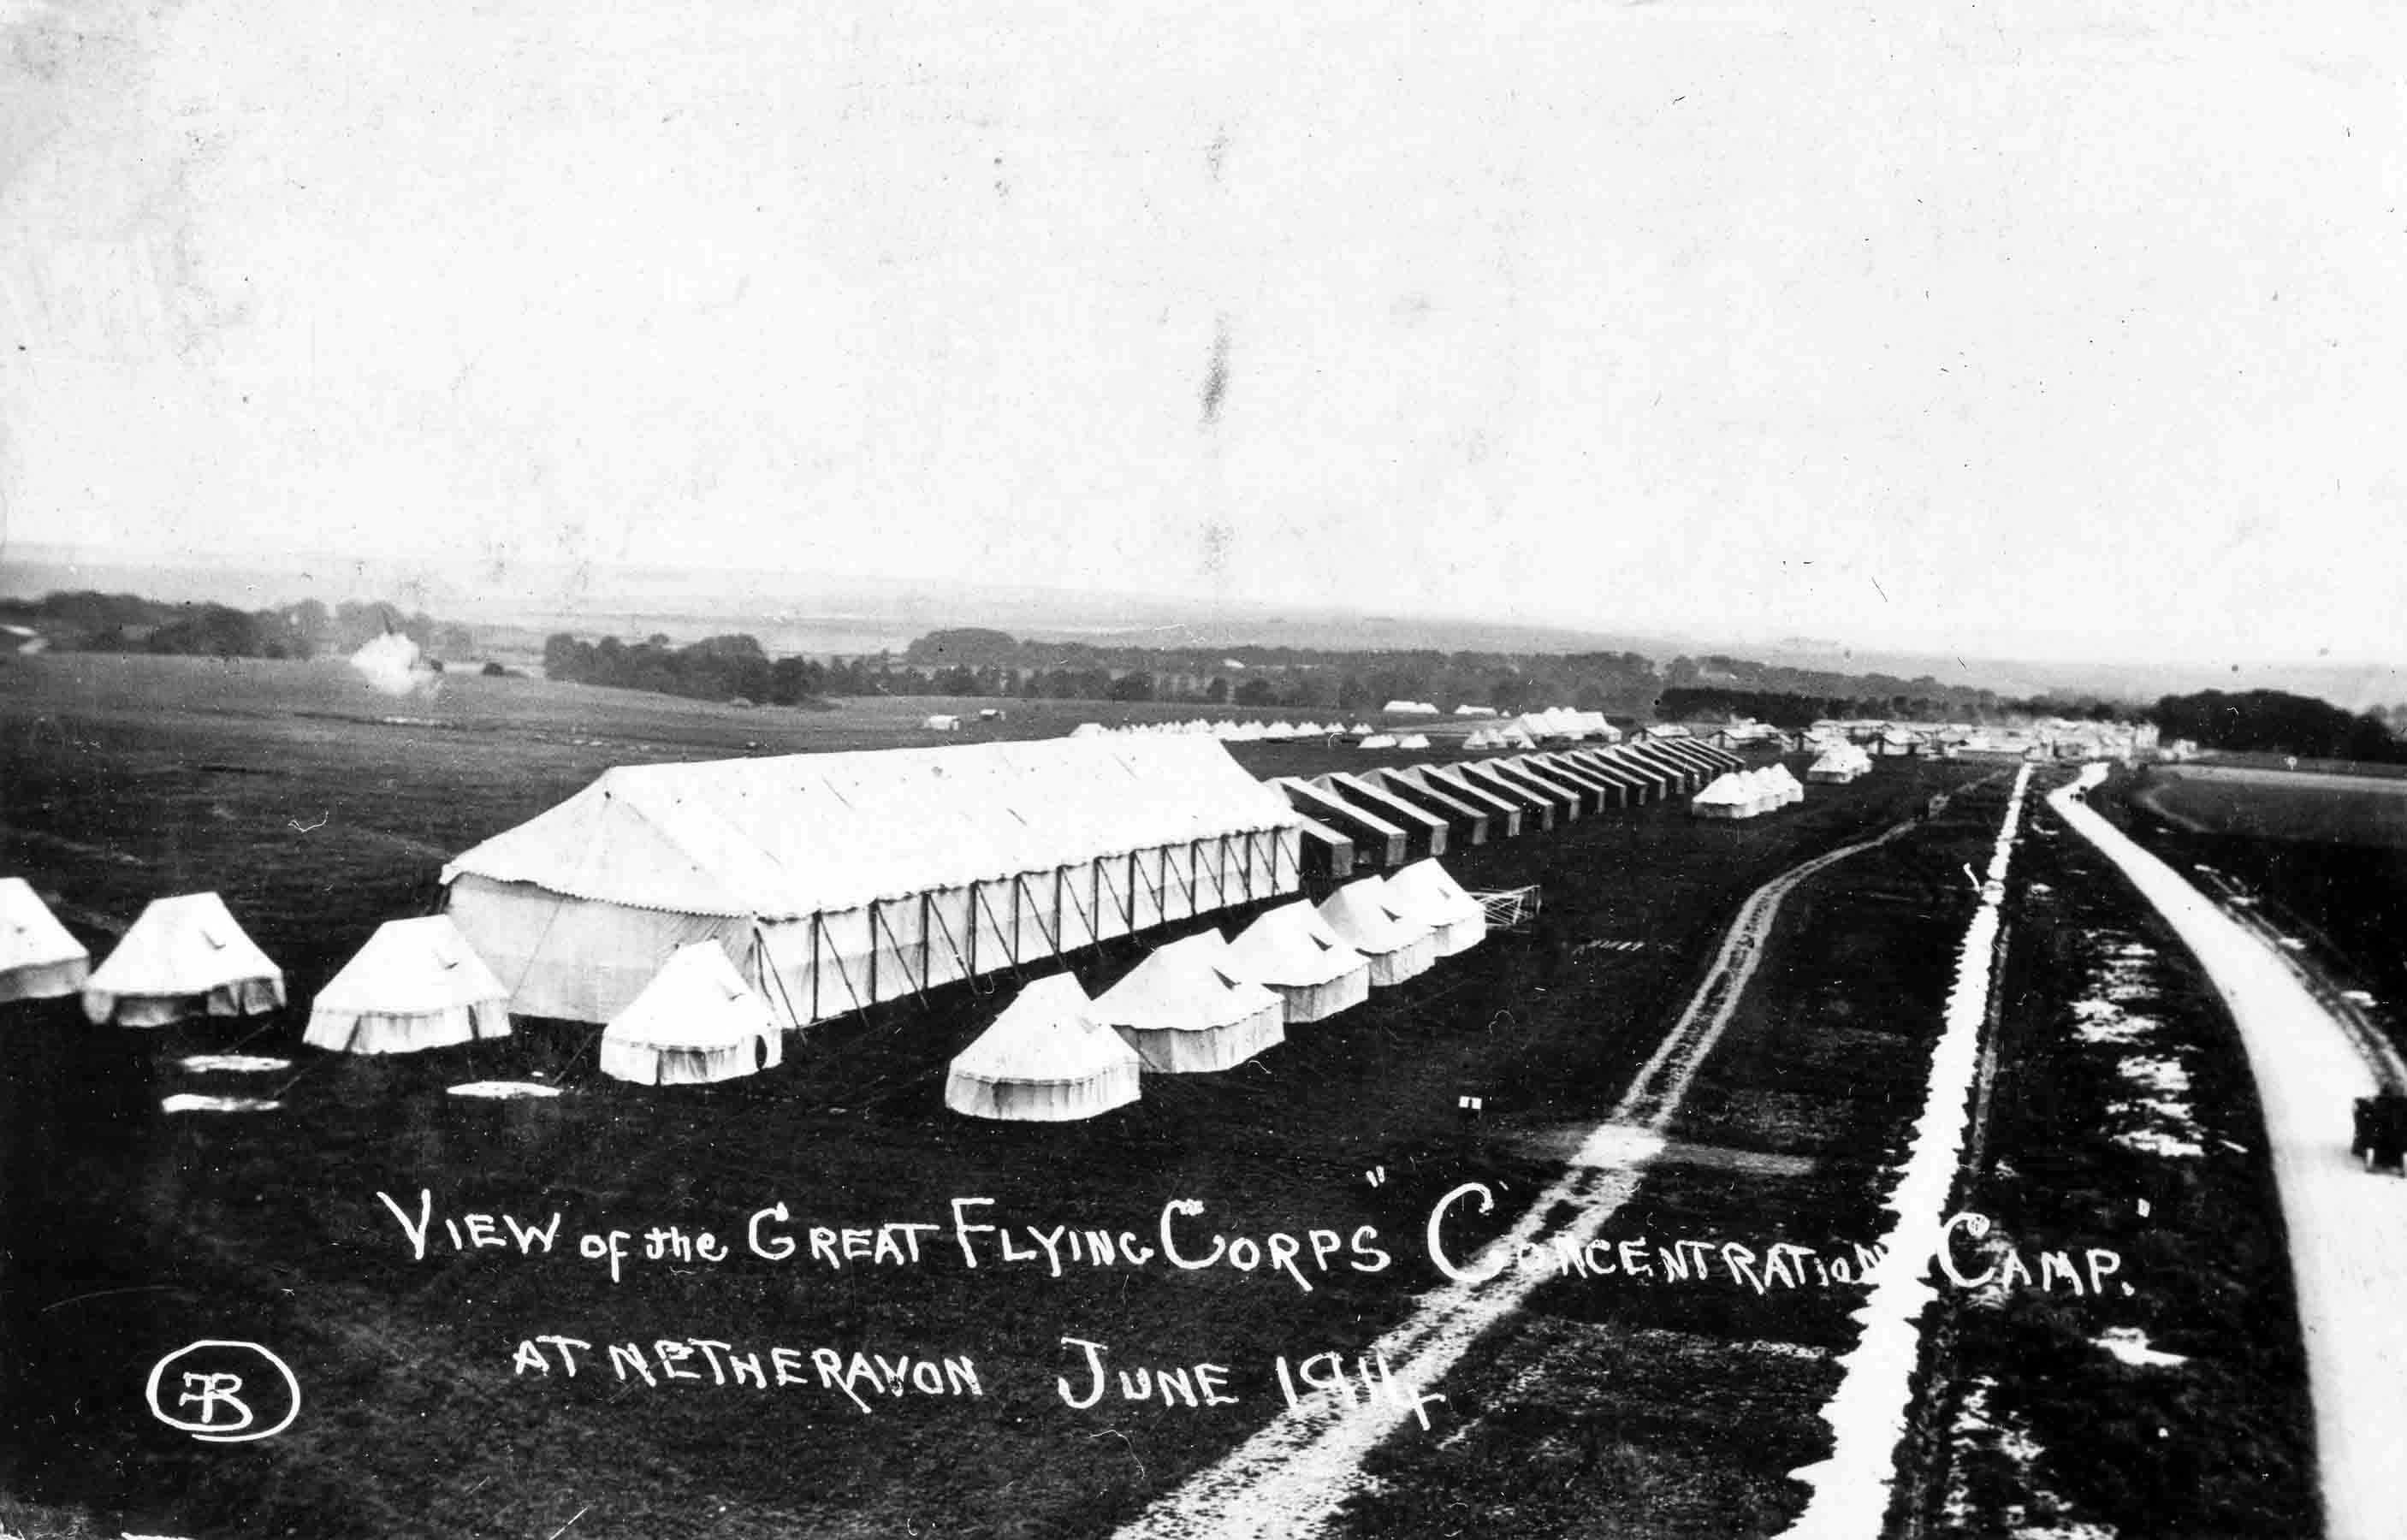 Preparing for War: The RFC's Concentration Camp